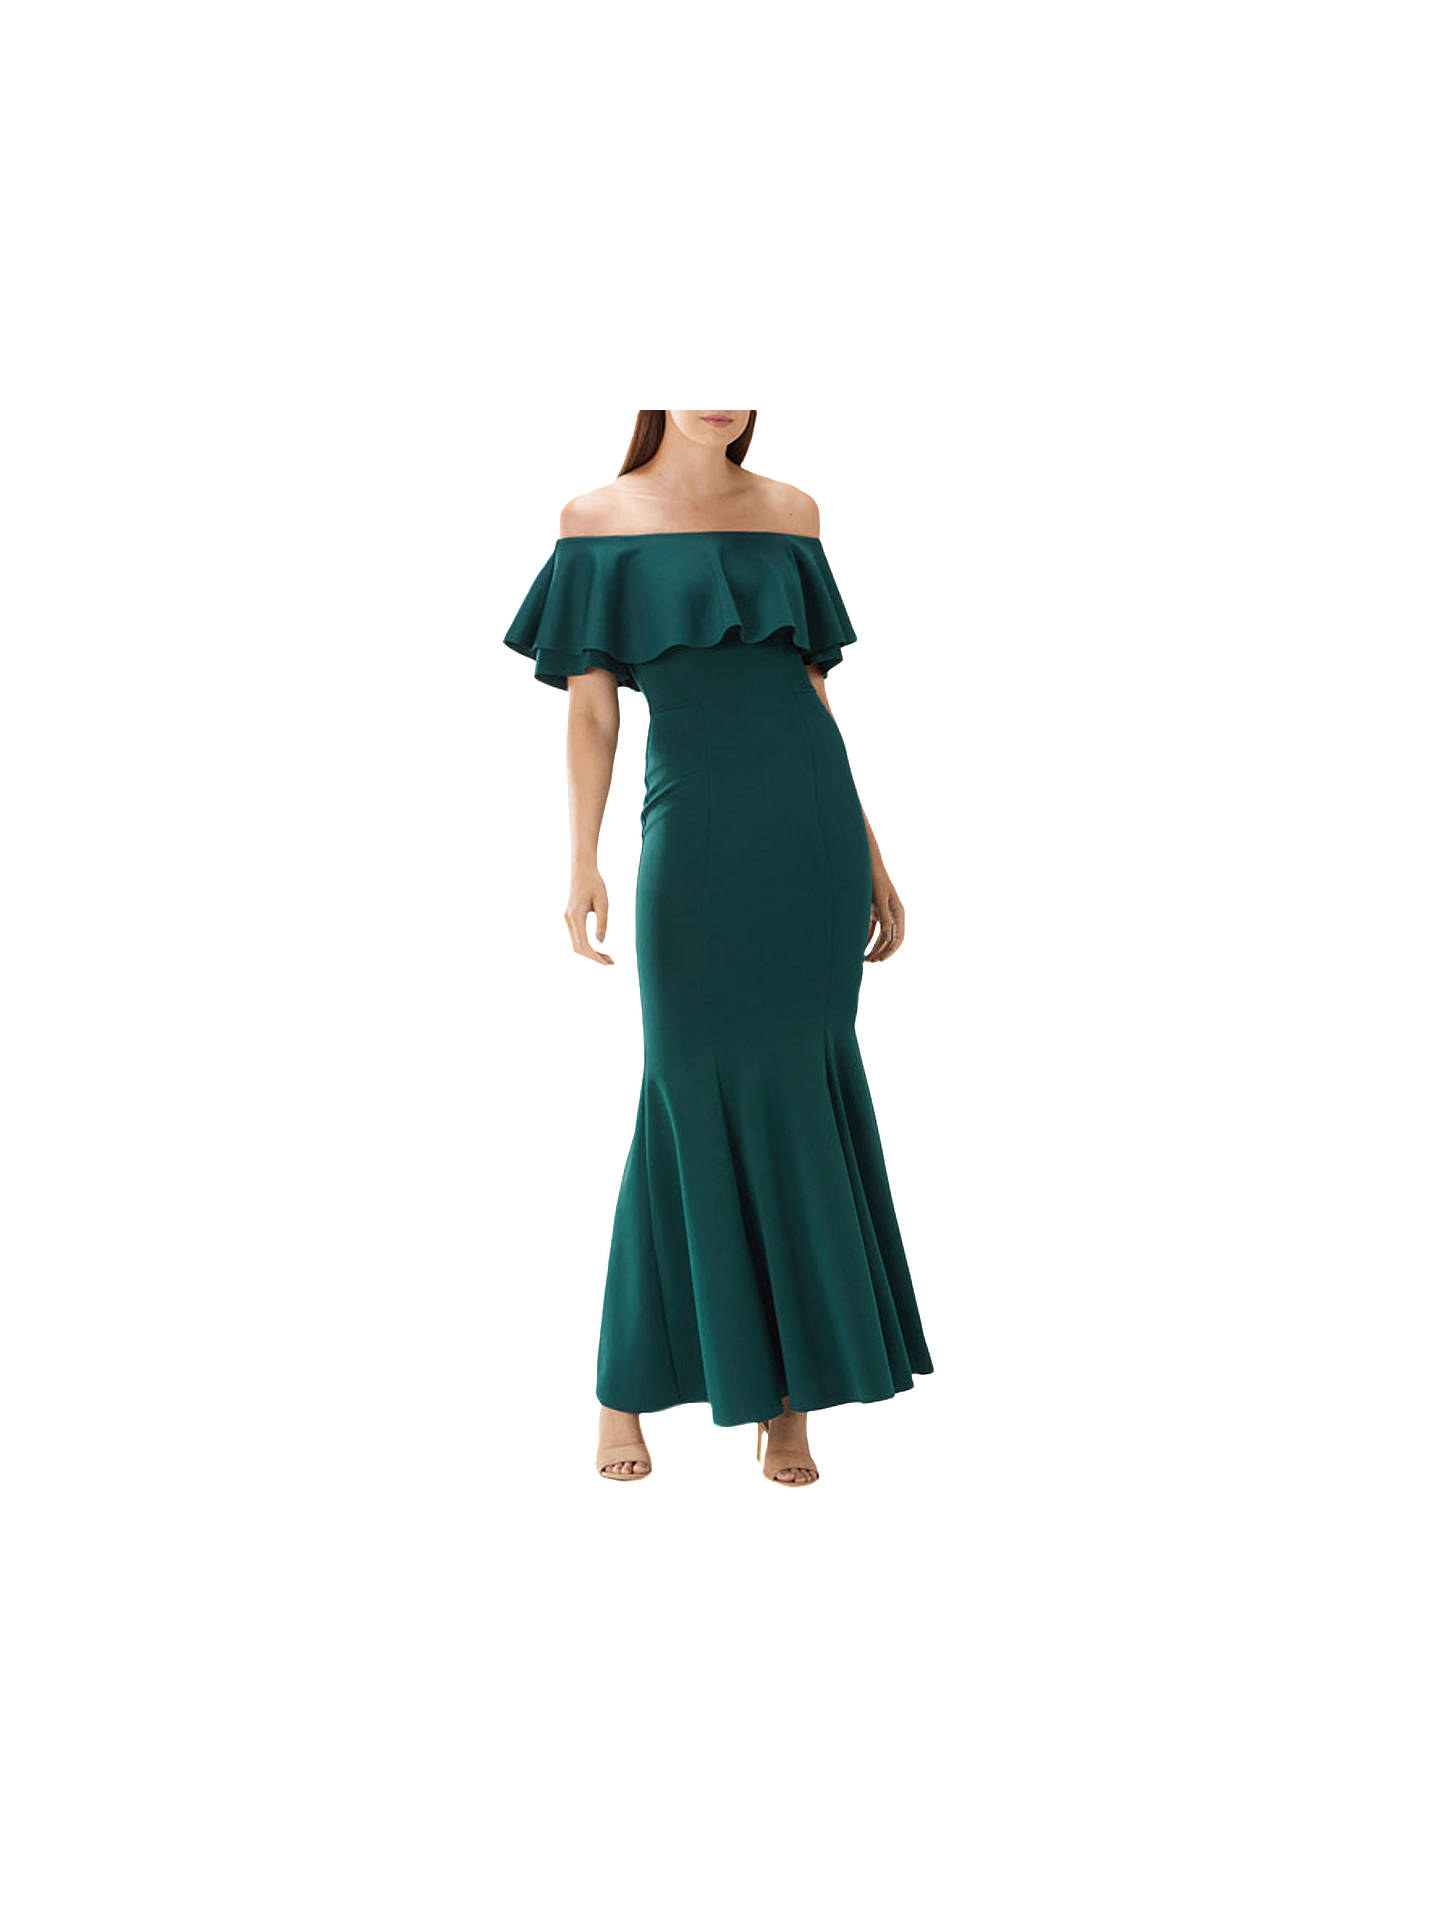 54f16747b78 House Of Fraser Coast Dresses Ireland - Gomes Weine AG